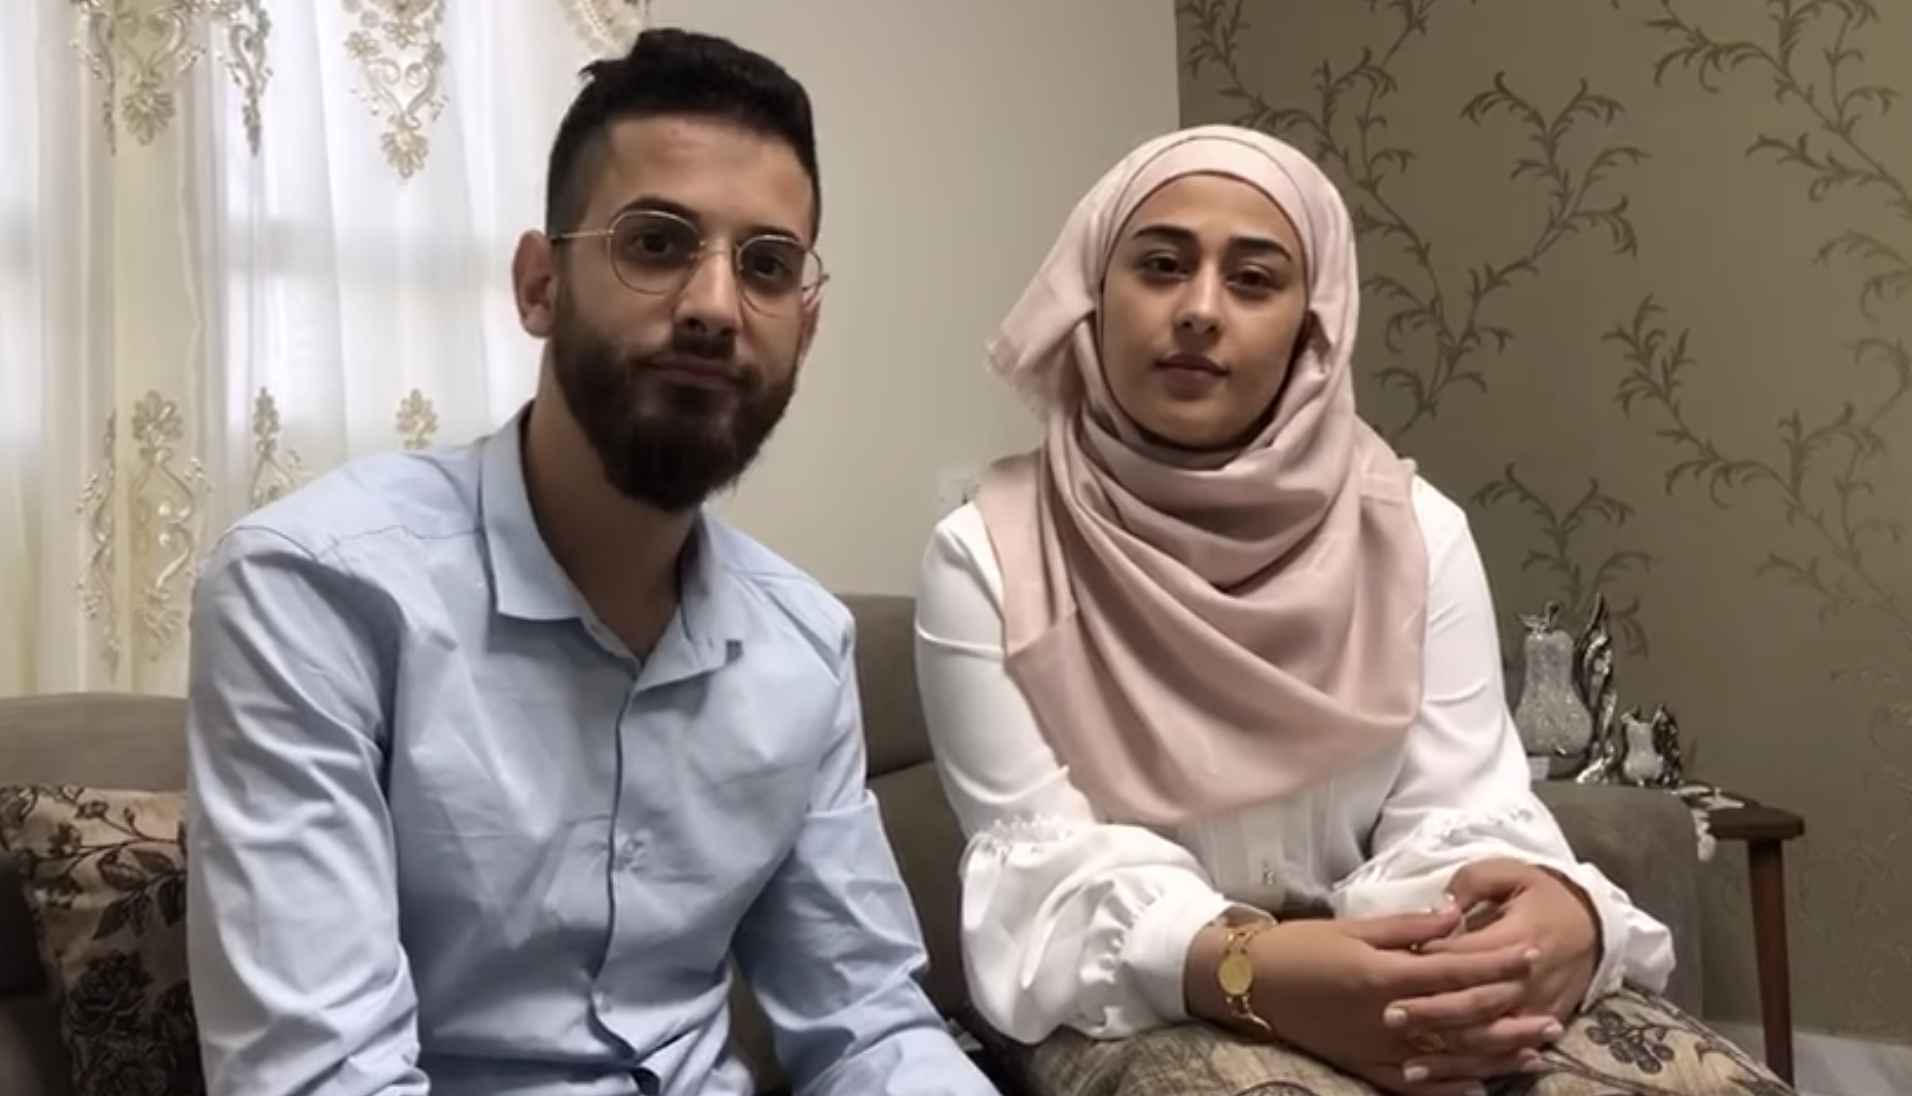 Umm al-Fahm couple, unable to hold large wedding, gives away 450 bags of food